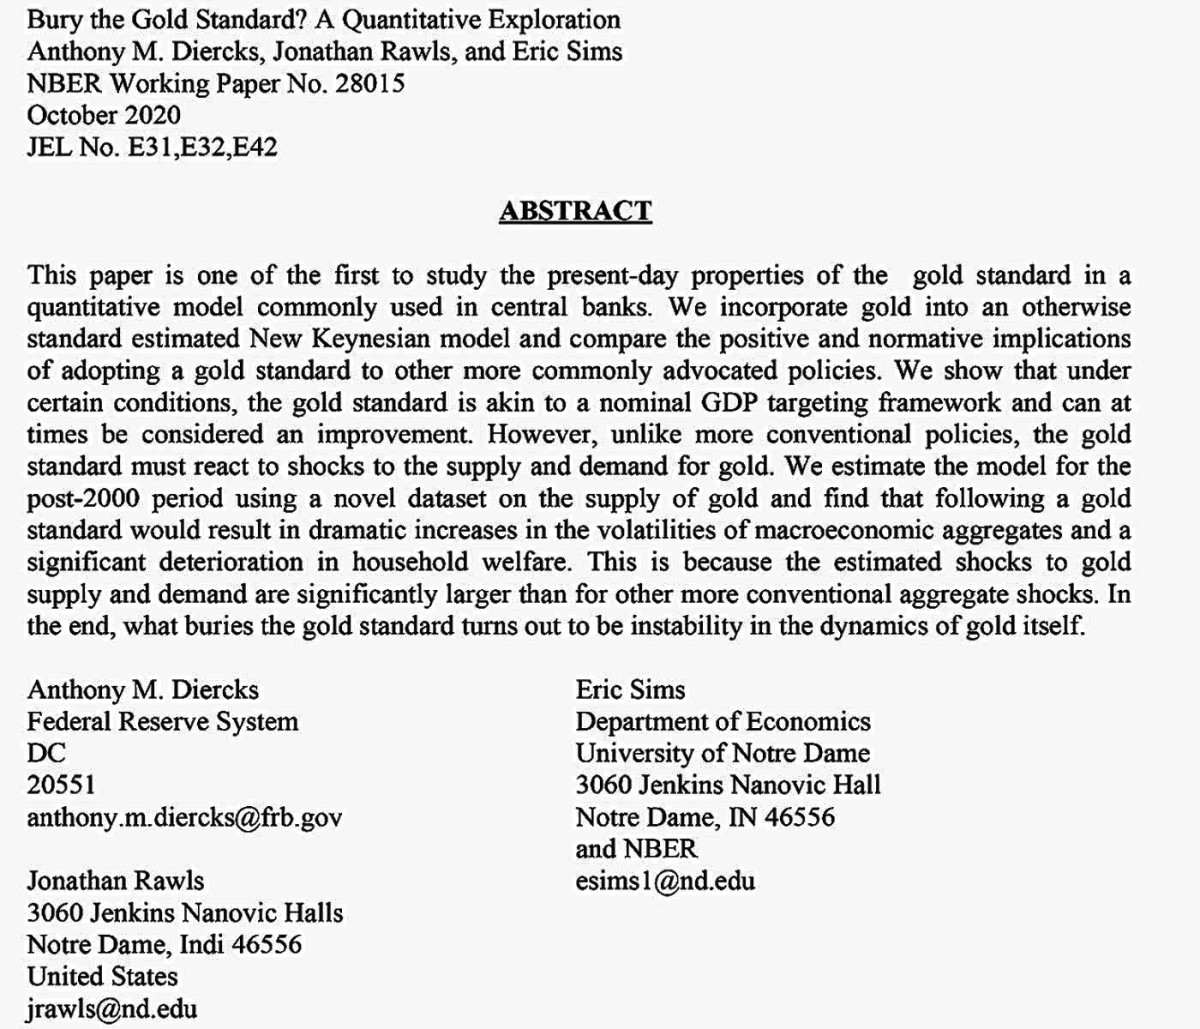 (Cont'd) Excerpt from study by Anthony M, Diercks, Jonathan Rawls and Eric Sims, three economists on the Gold Standard.